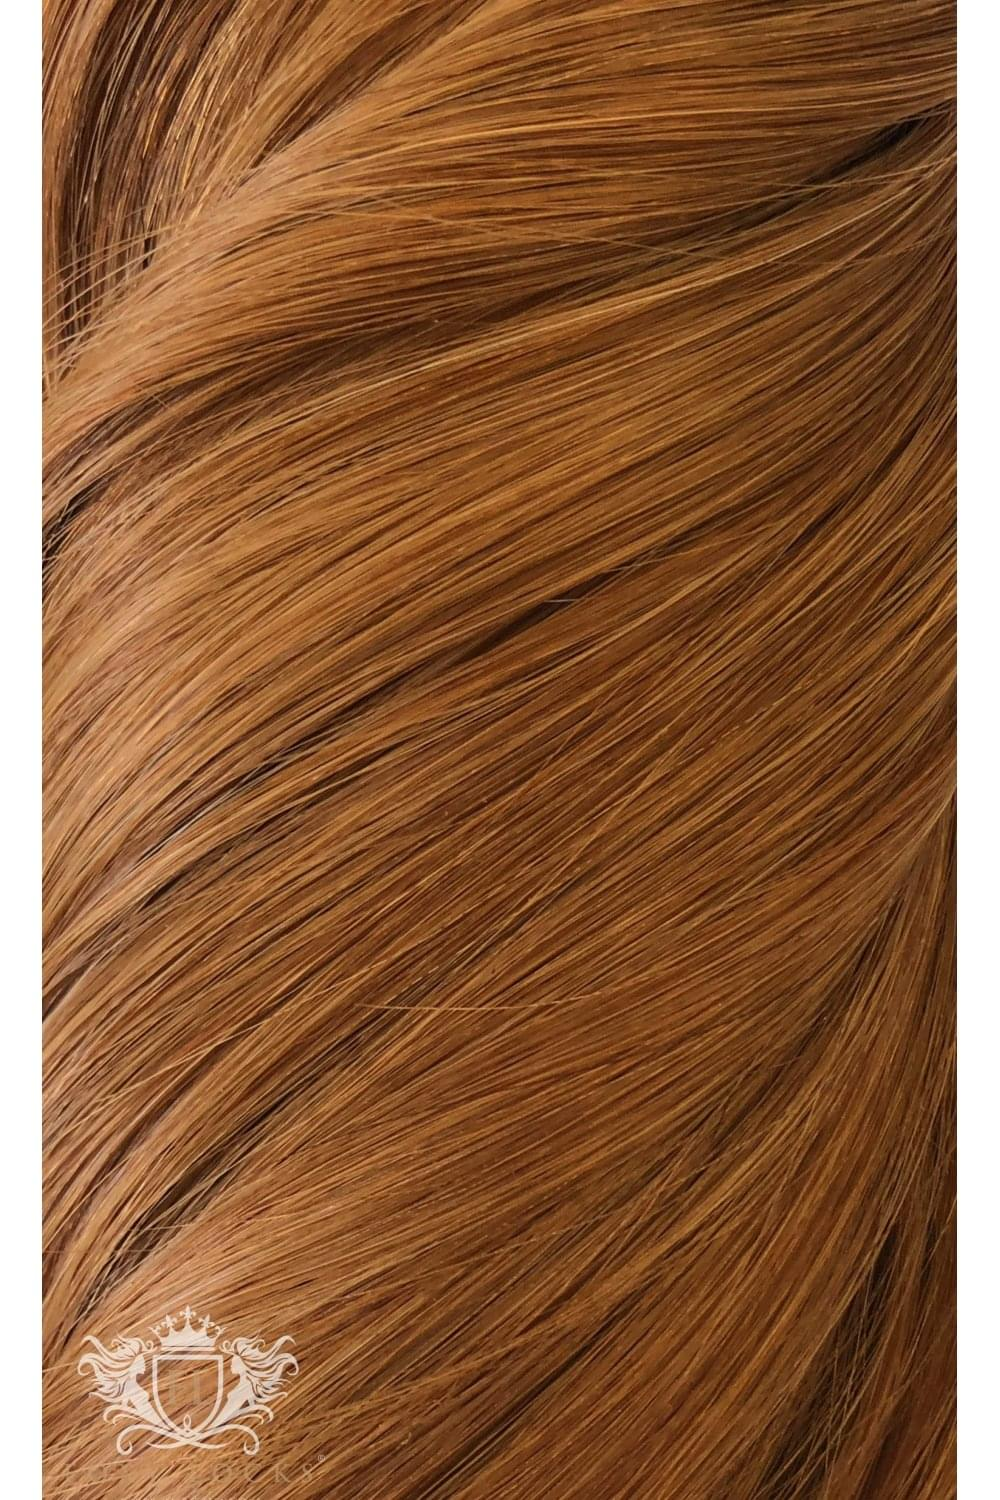 Cinnamon Ginger Deluxe 20 Seamless Clip In Human Hair Extensions